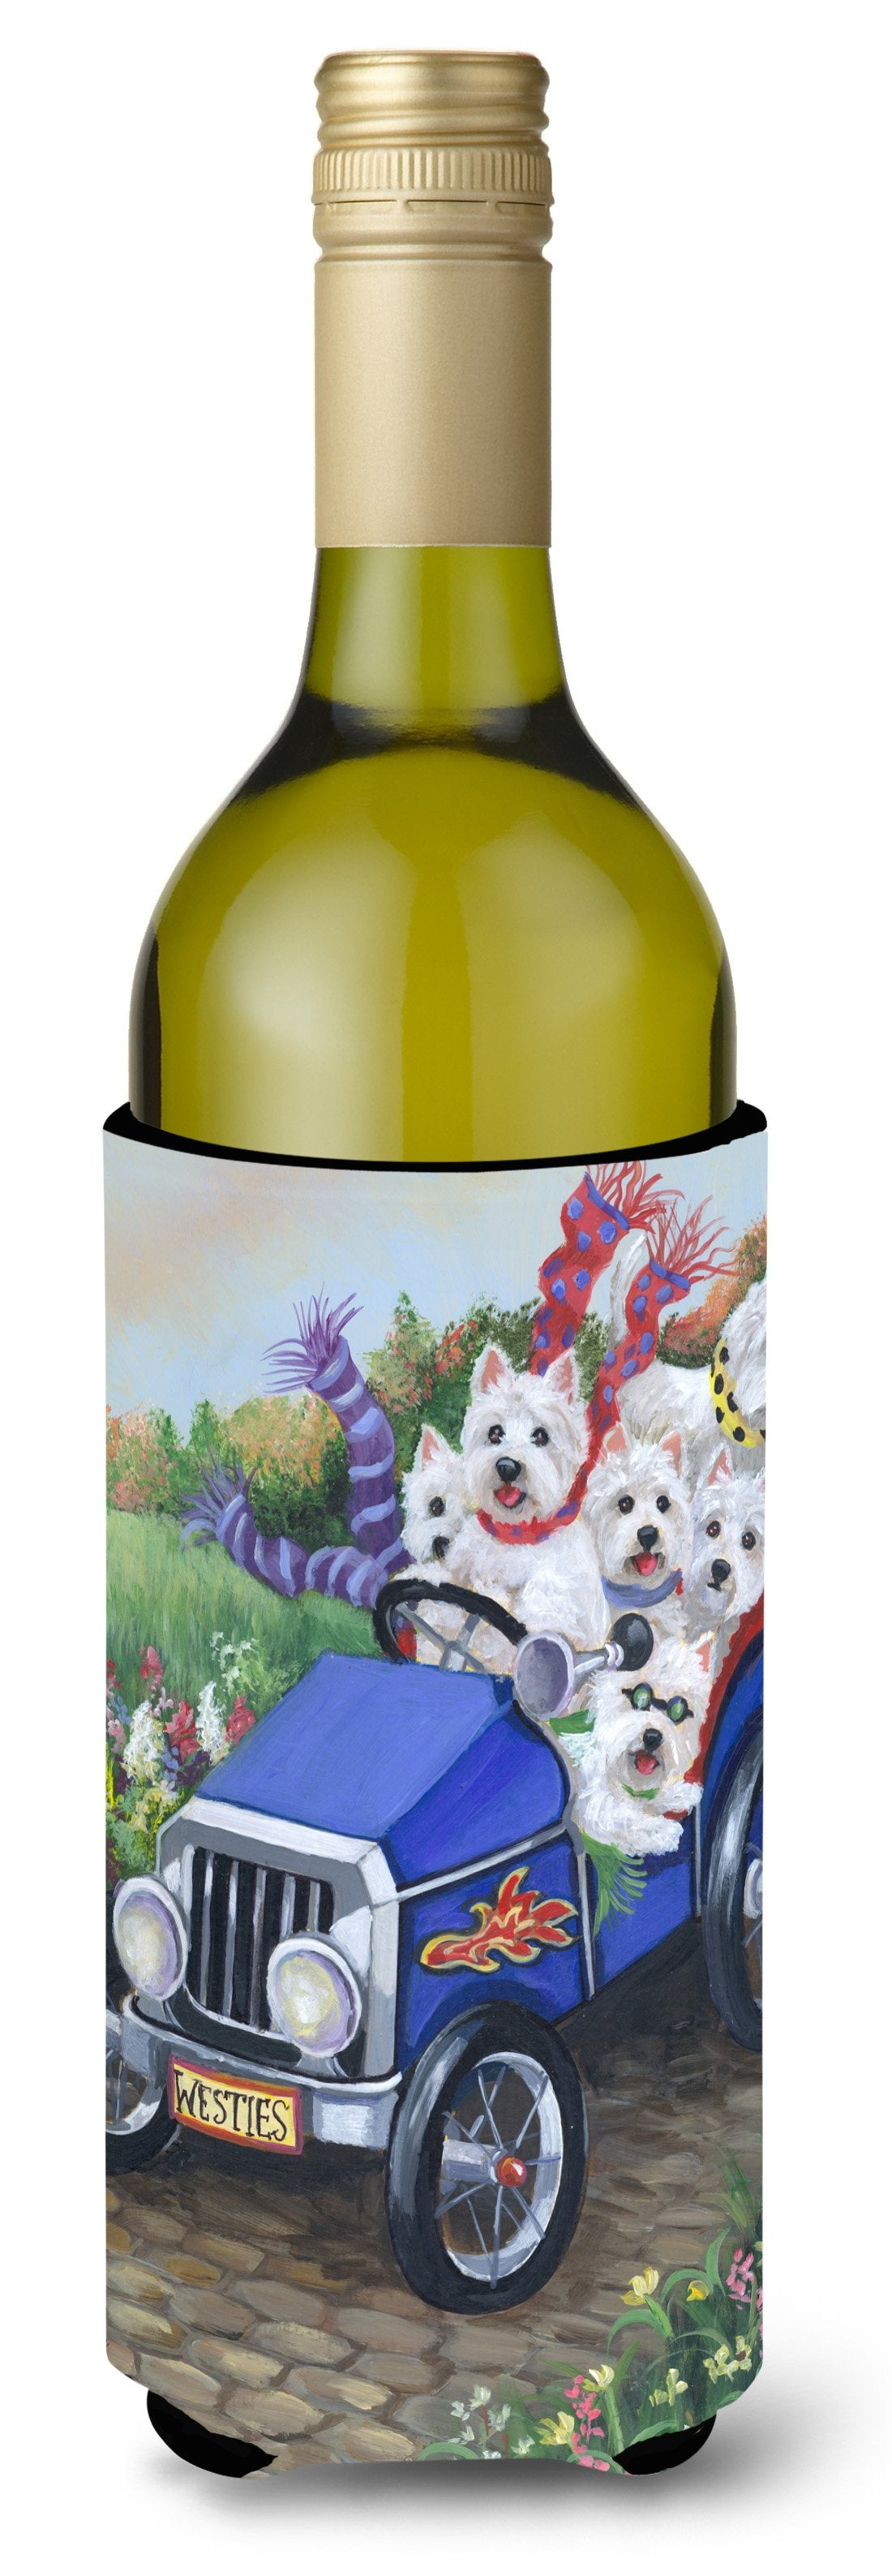 Westie Hot Rod Wine Bottle Hugger PPP3209LITERK by Caroline's Treasures